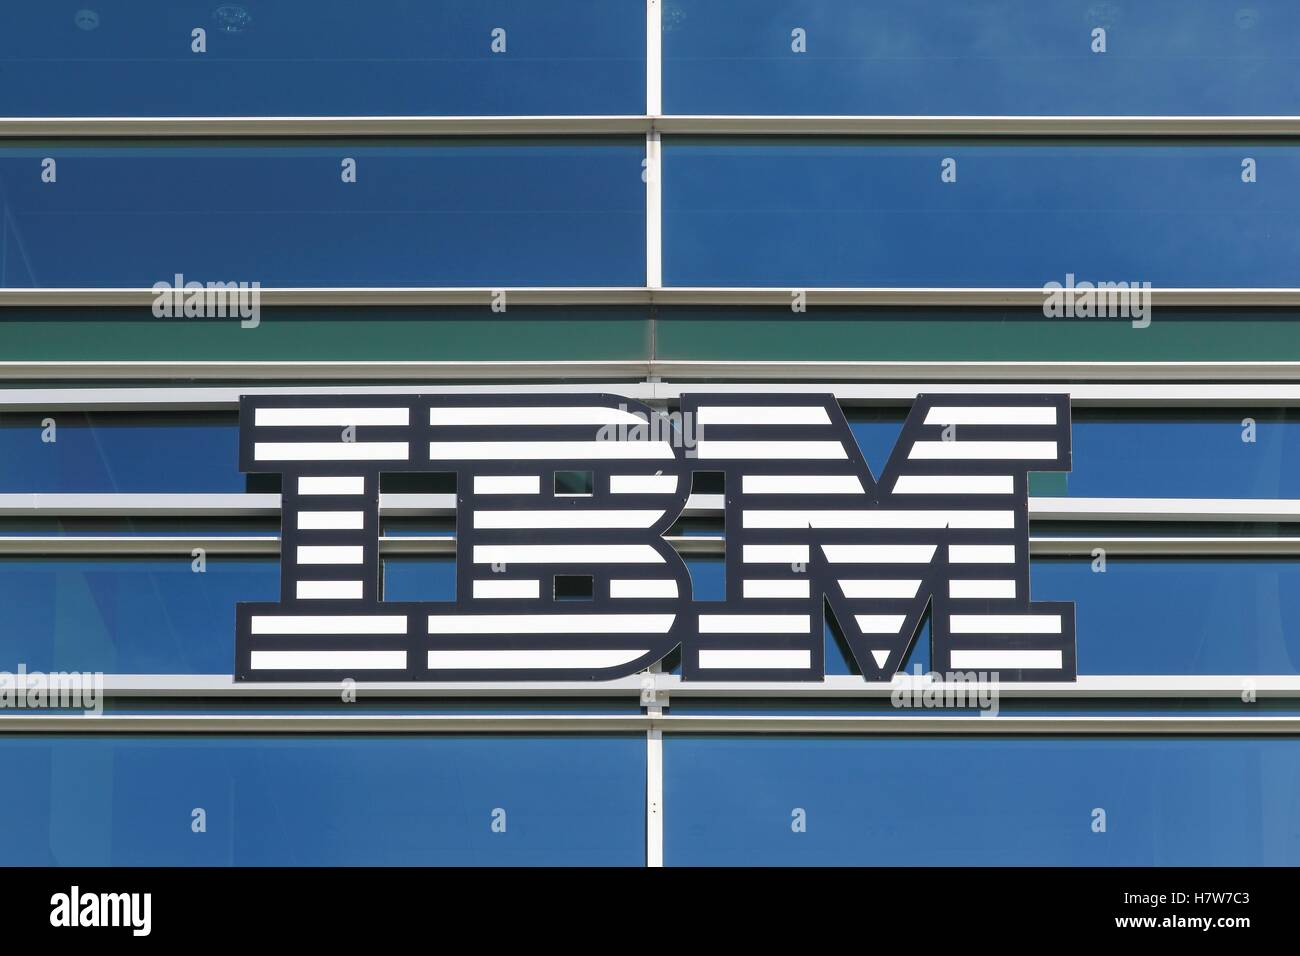 IBM logo on a wall - Stock Image